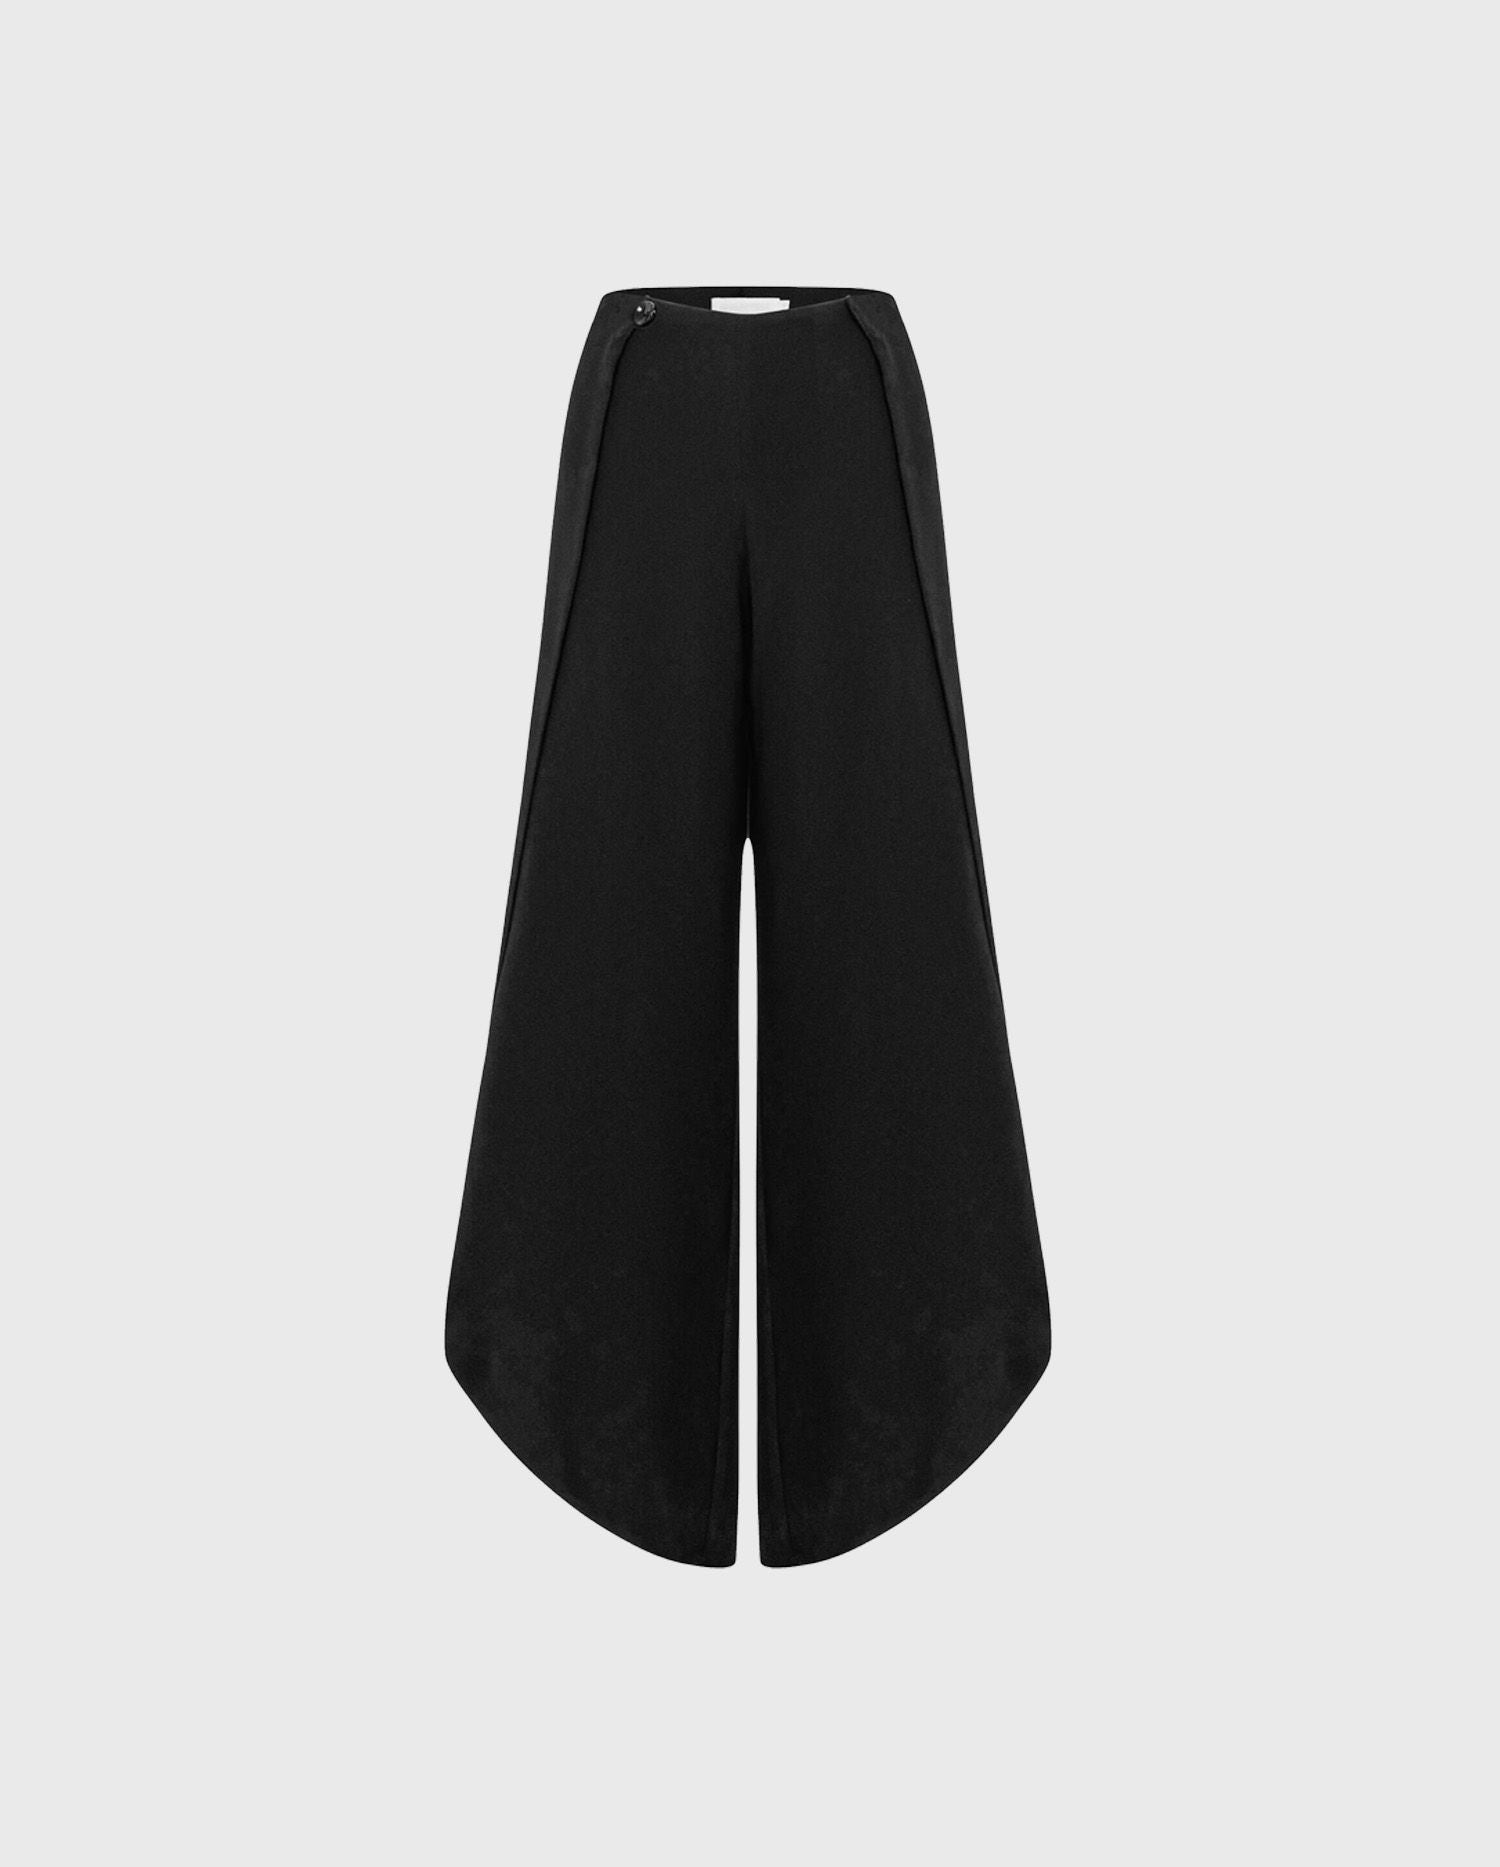 Explore a look of sensuality with the MYLIANE black tulip statment trousers